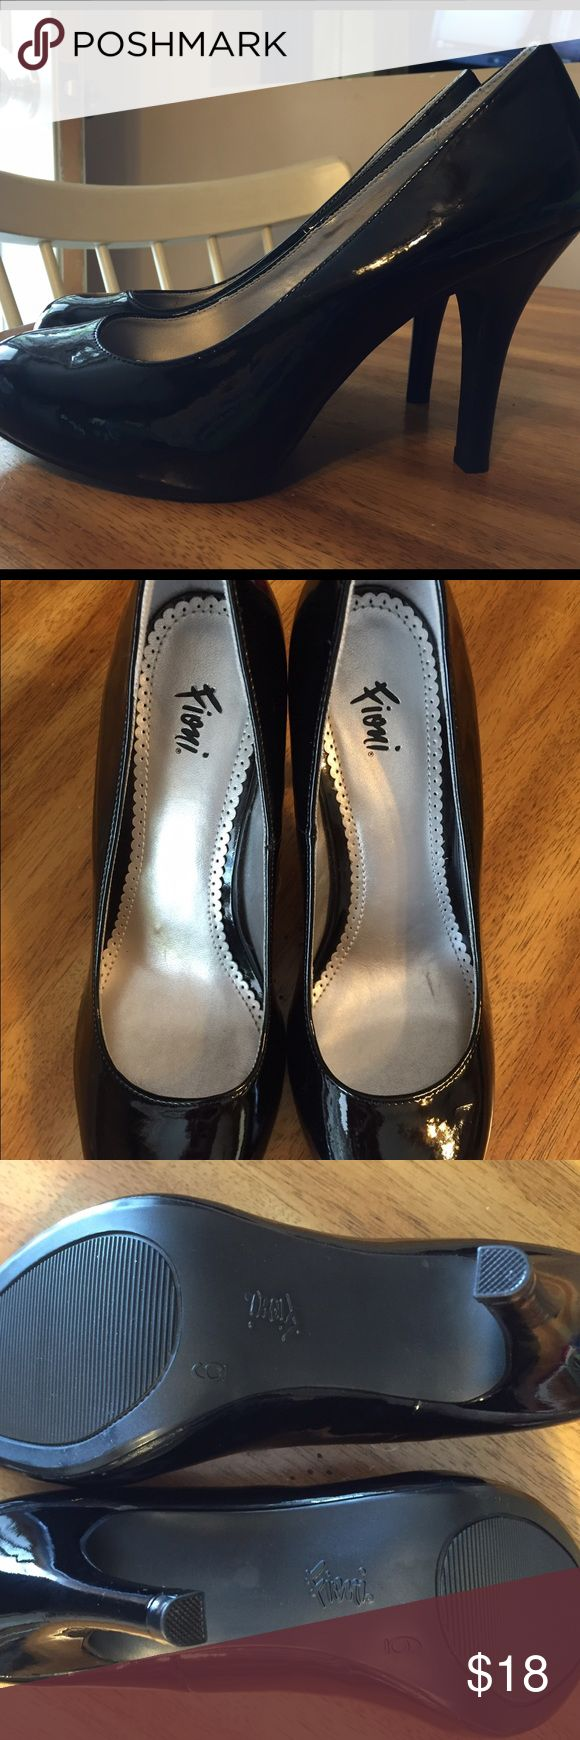 Brand new Fiona black patent high heel shoe size 6 Hard to find- Rounded Toe- Brand new Fiona black patent high heel shoe size 6. Never worn as you can see by pic. Small scuff line across right toe. Not noticeable from a few inches away. FIONI Clothing Shoes Heels